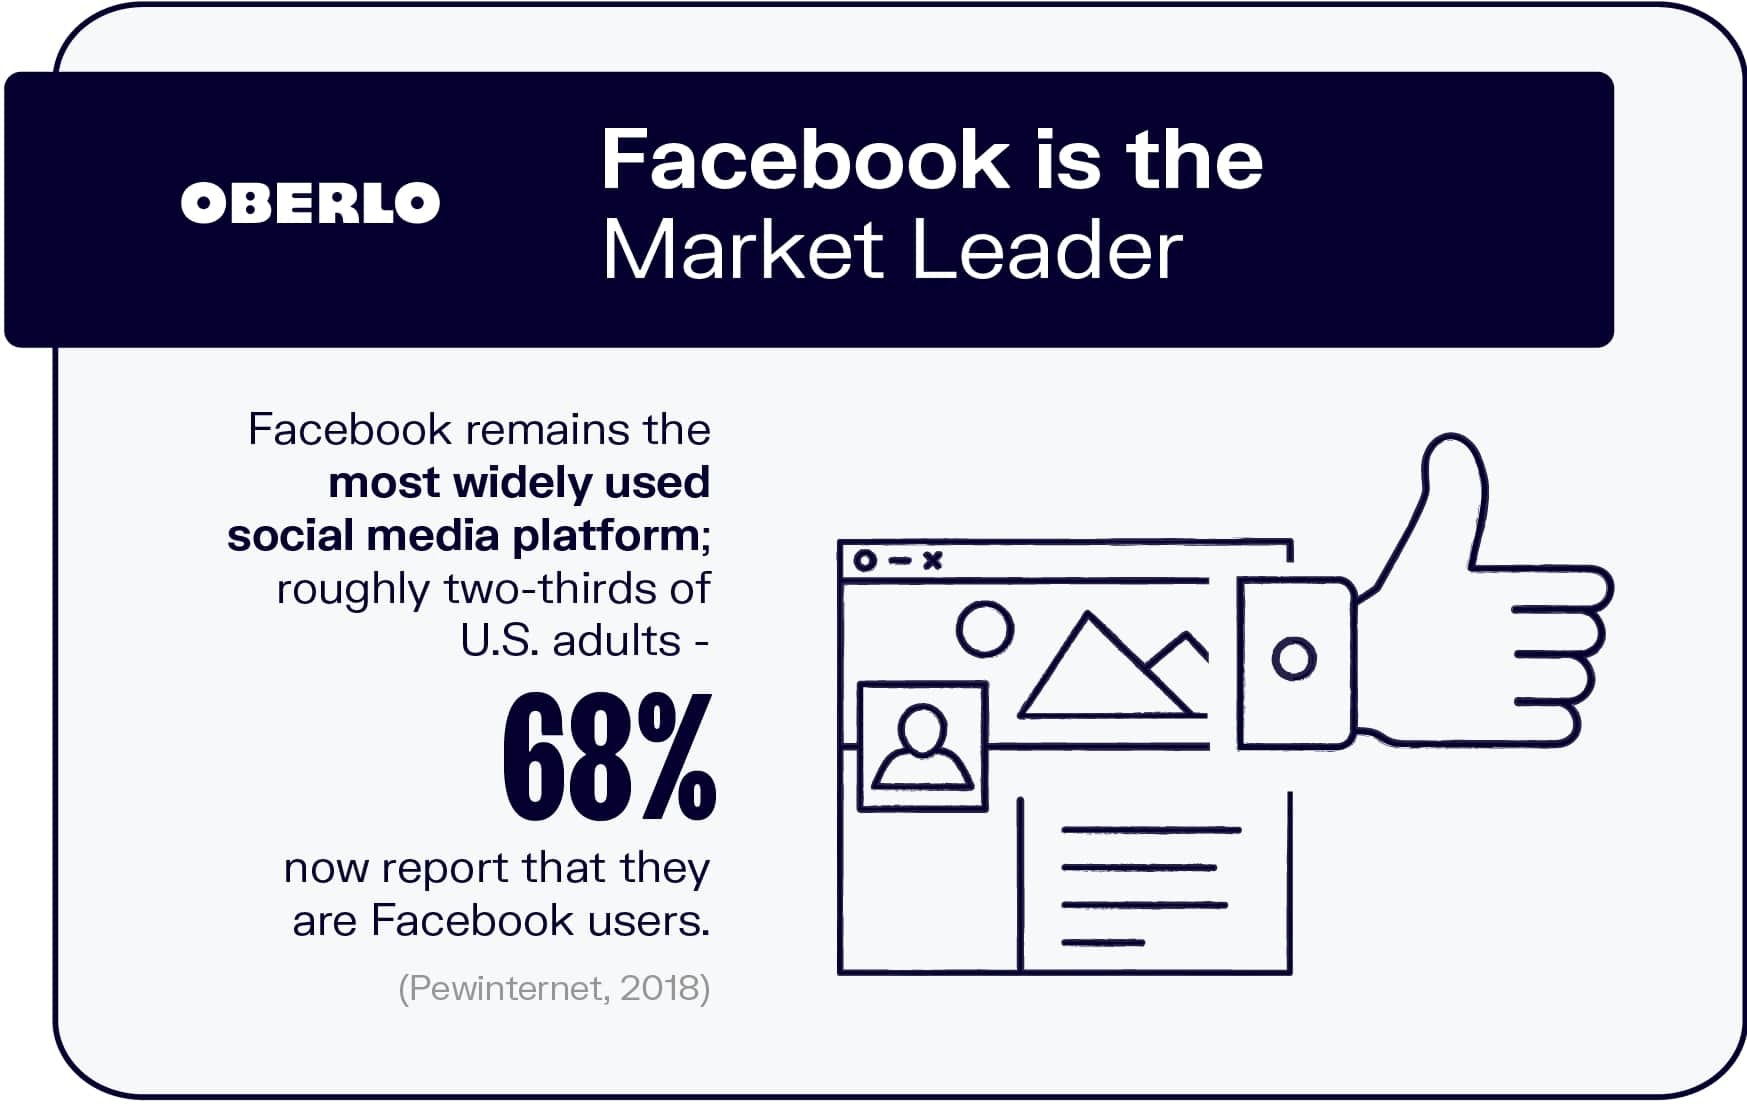 Facebook is the Market Leader